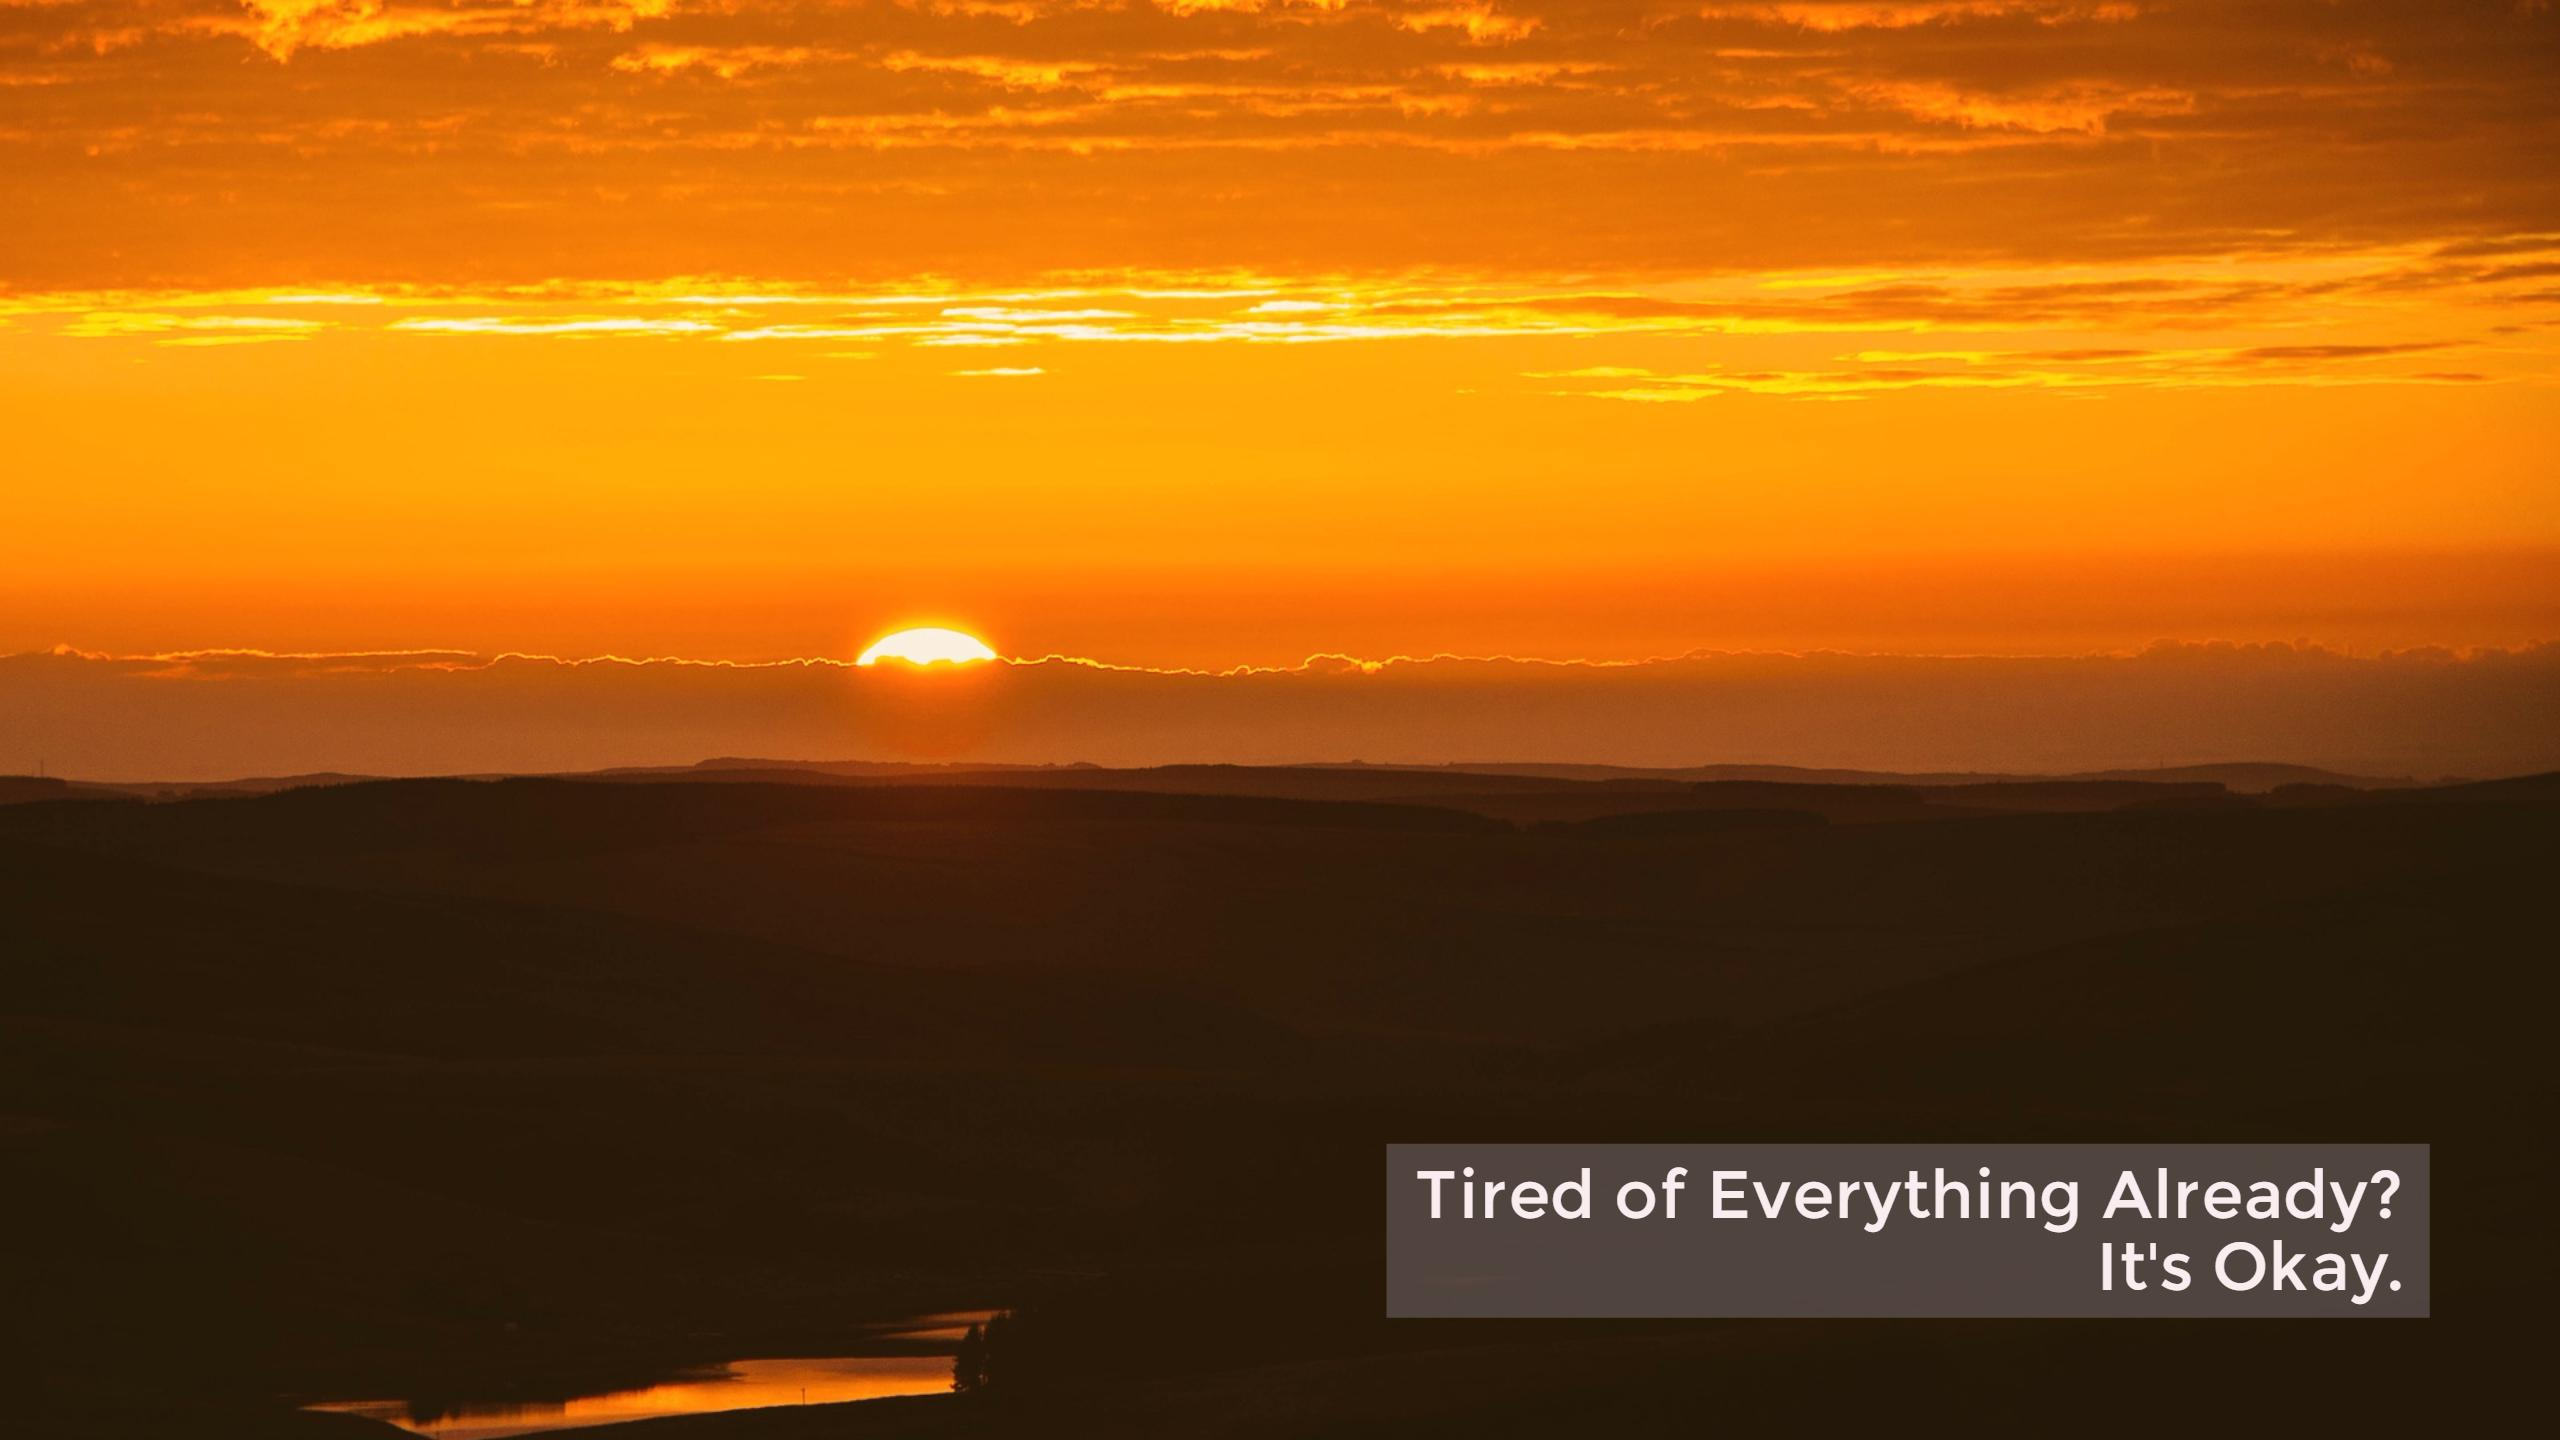 Tired of Everything Already? It's Okay.